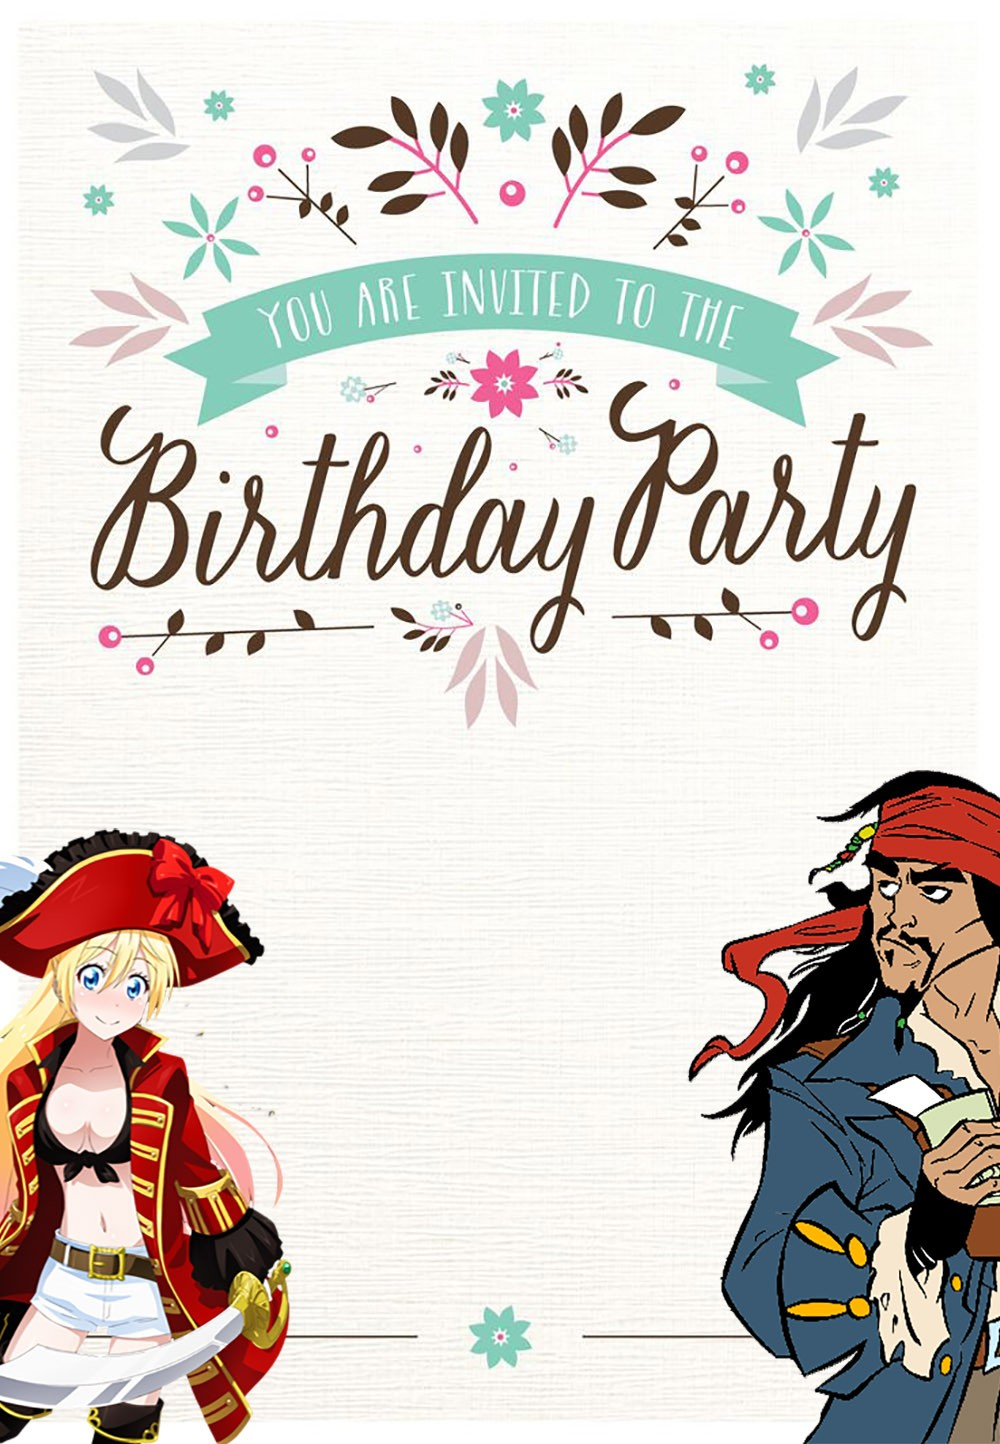 10 Steps and Ideas to Plan a Pirate Party with FREE Invitation Templates